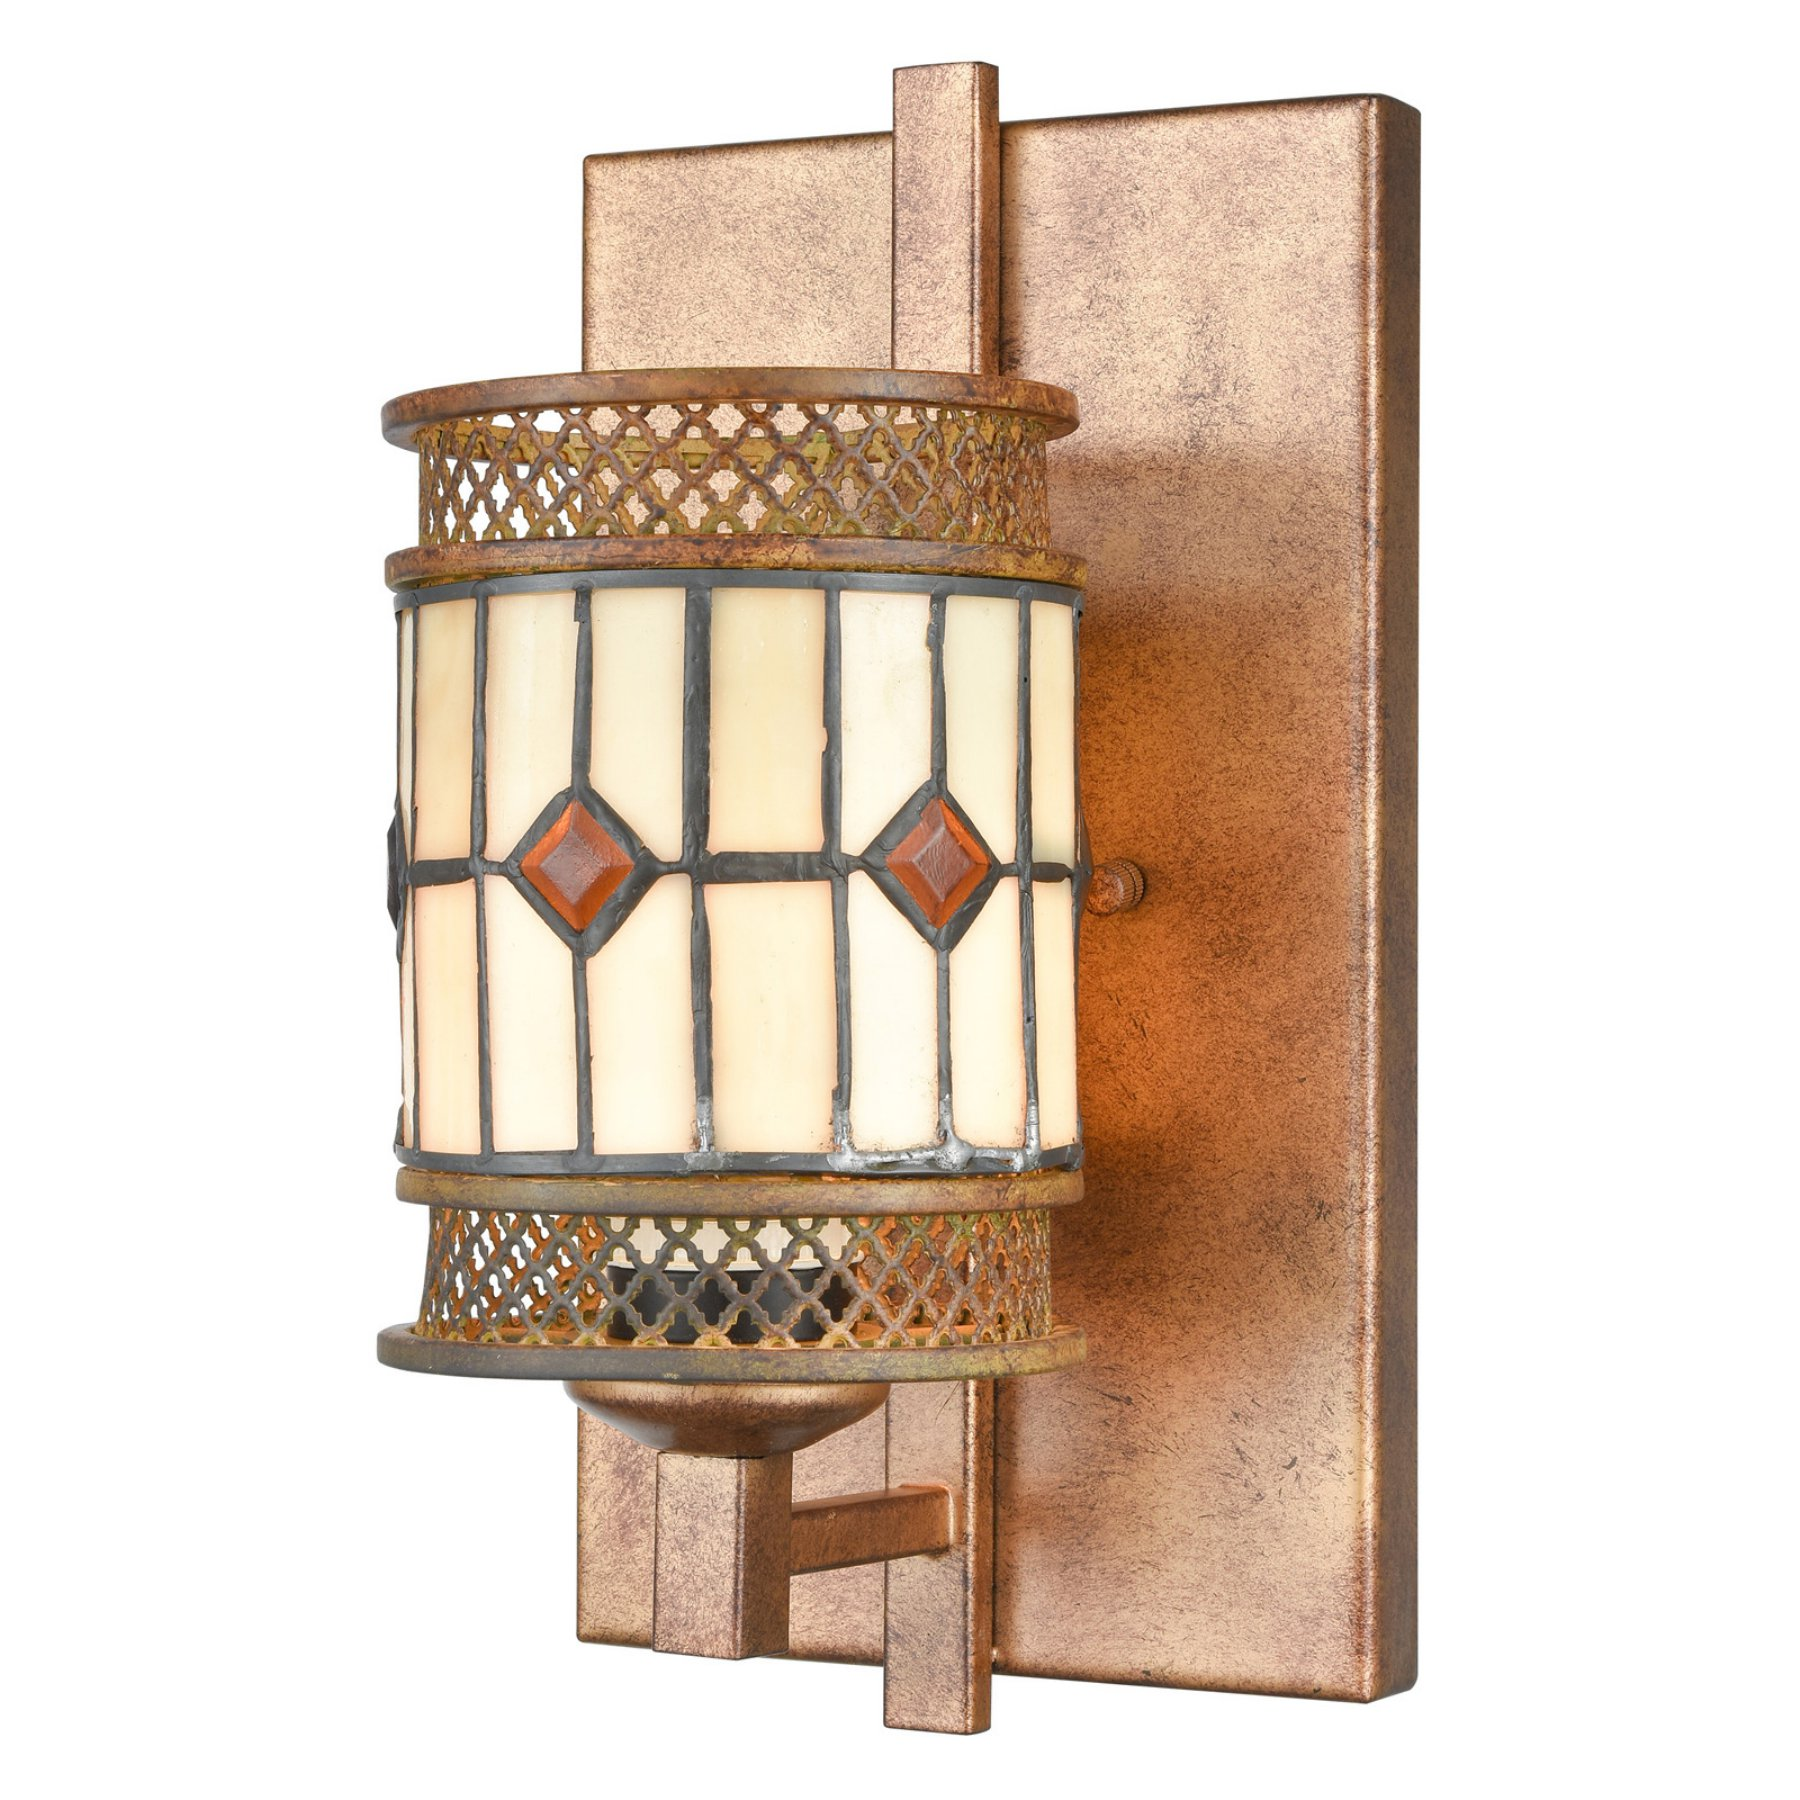 Dale Tiffany Minerals Tiffany Wall Sconce  Tw17021